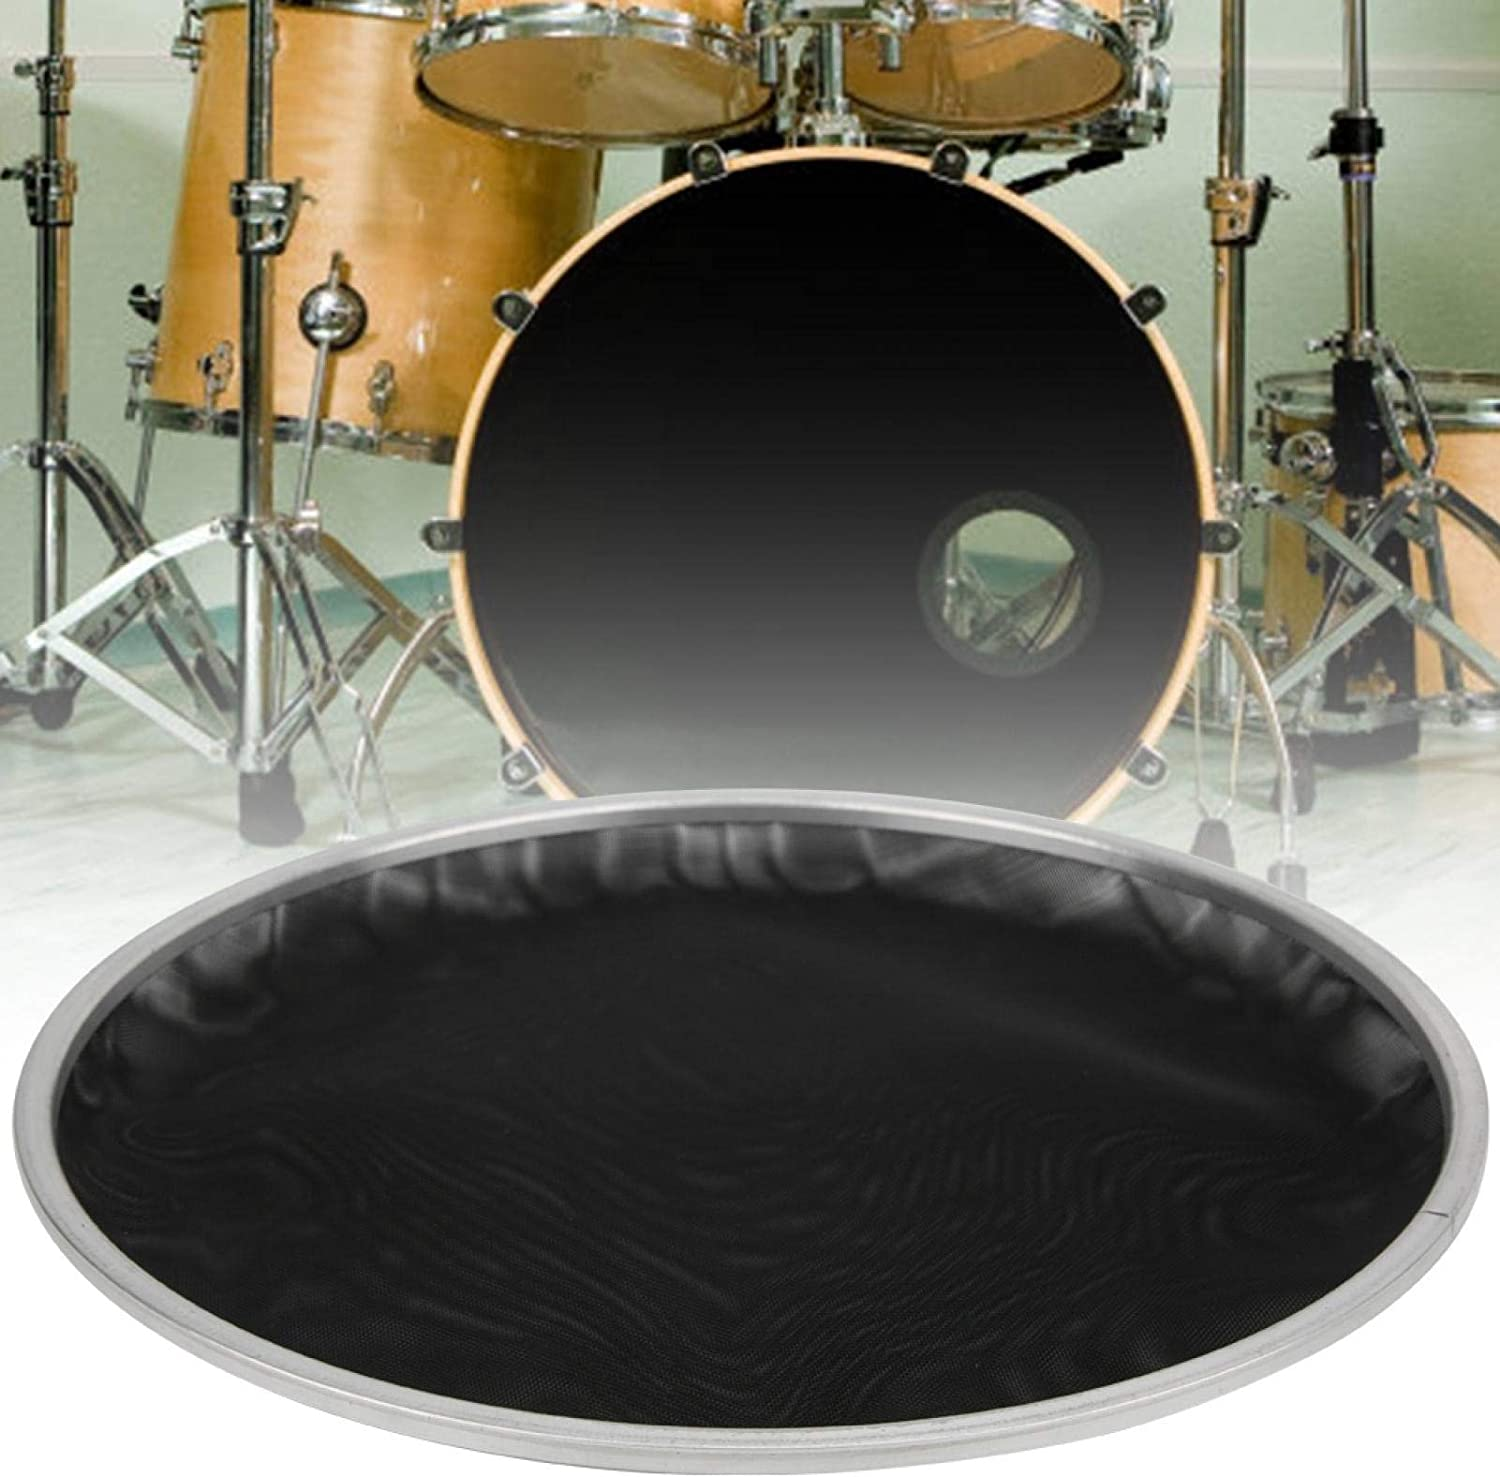 Pwshymi Drum Special sale item Head Easy To Use Musican Enthusiasts For shipfree